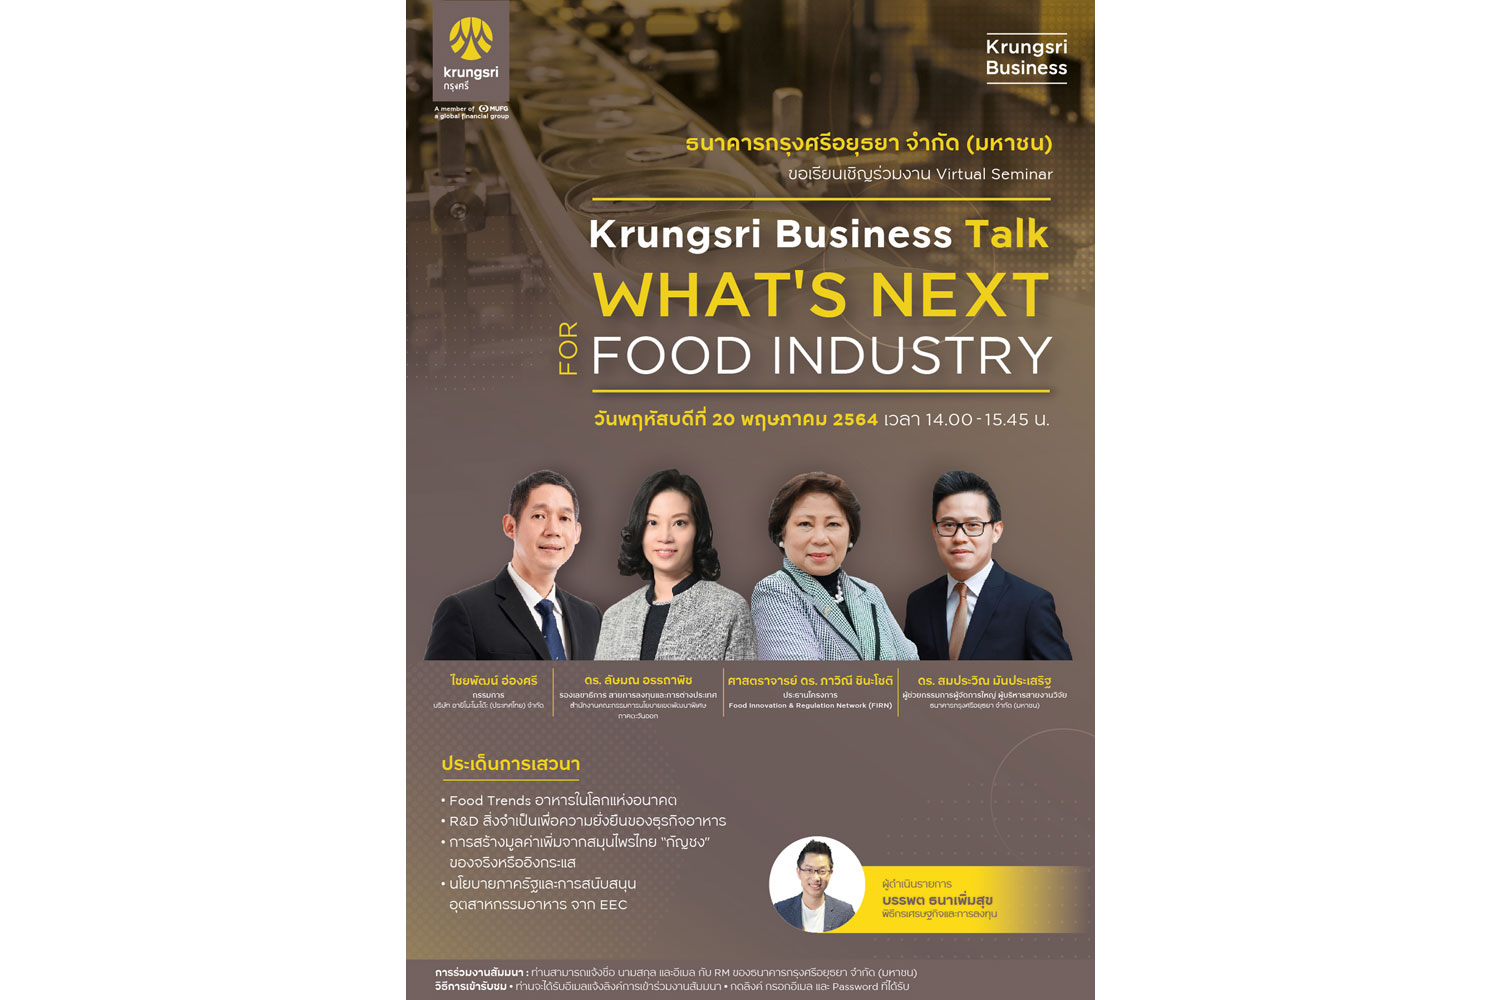 Ajinomoto to join Krungsri Business Talk on 'What's Next for the Food Industry'